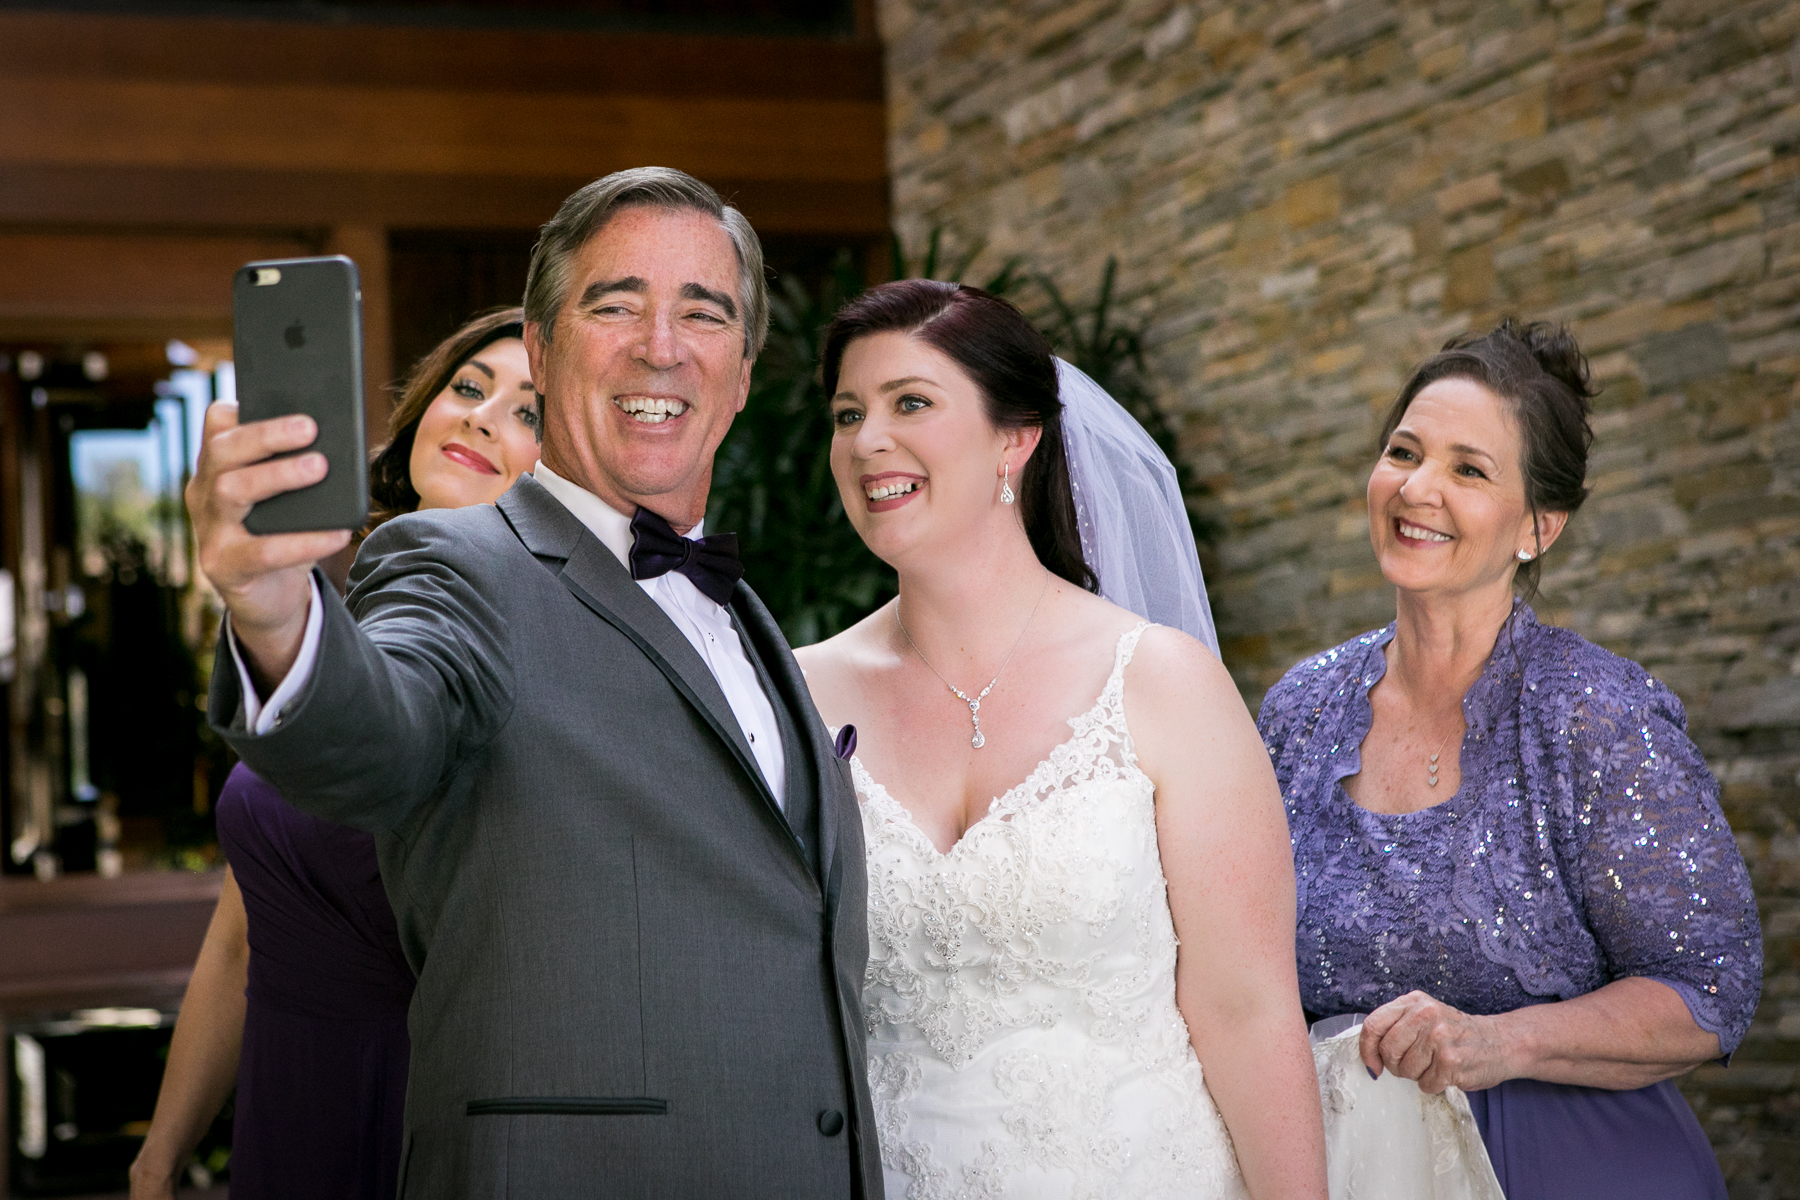 father selfie bride and family wedding at orange county photos